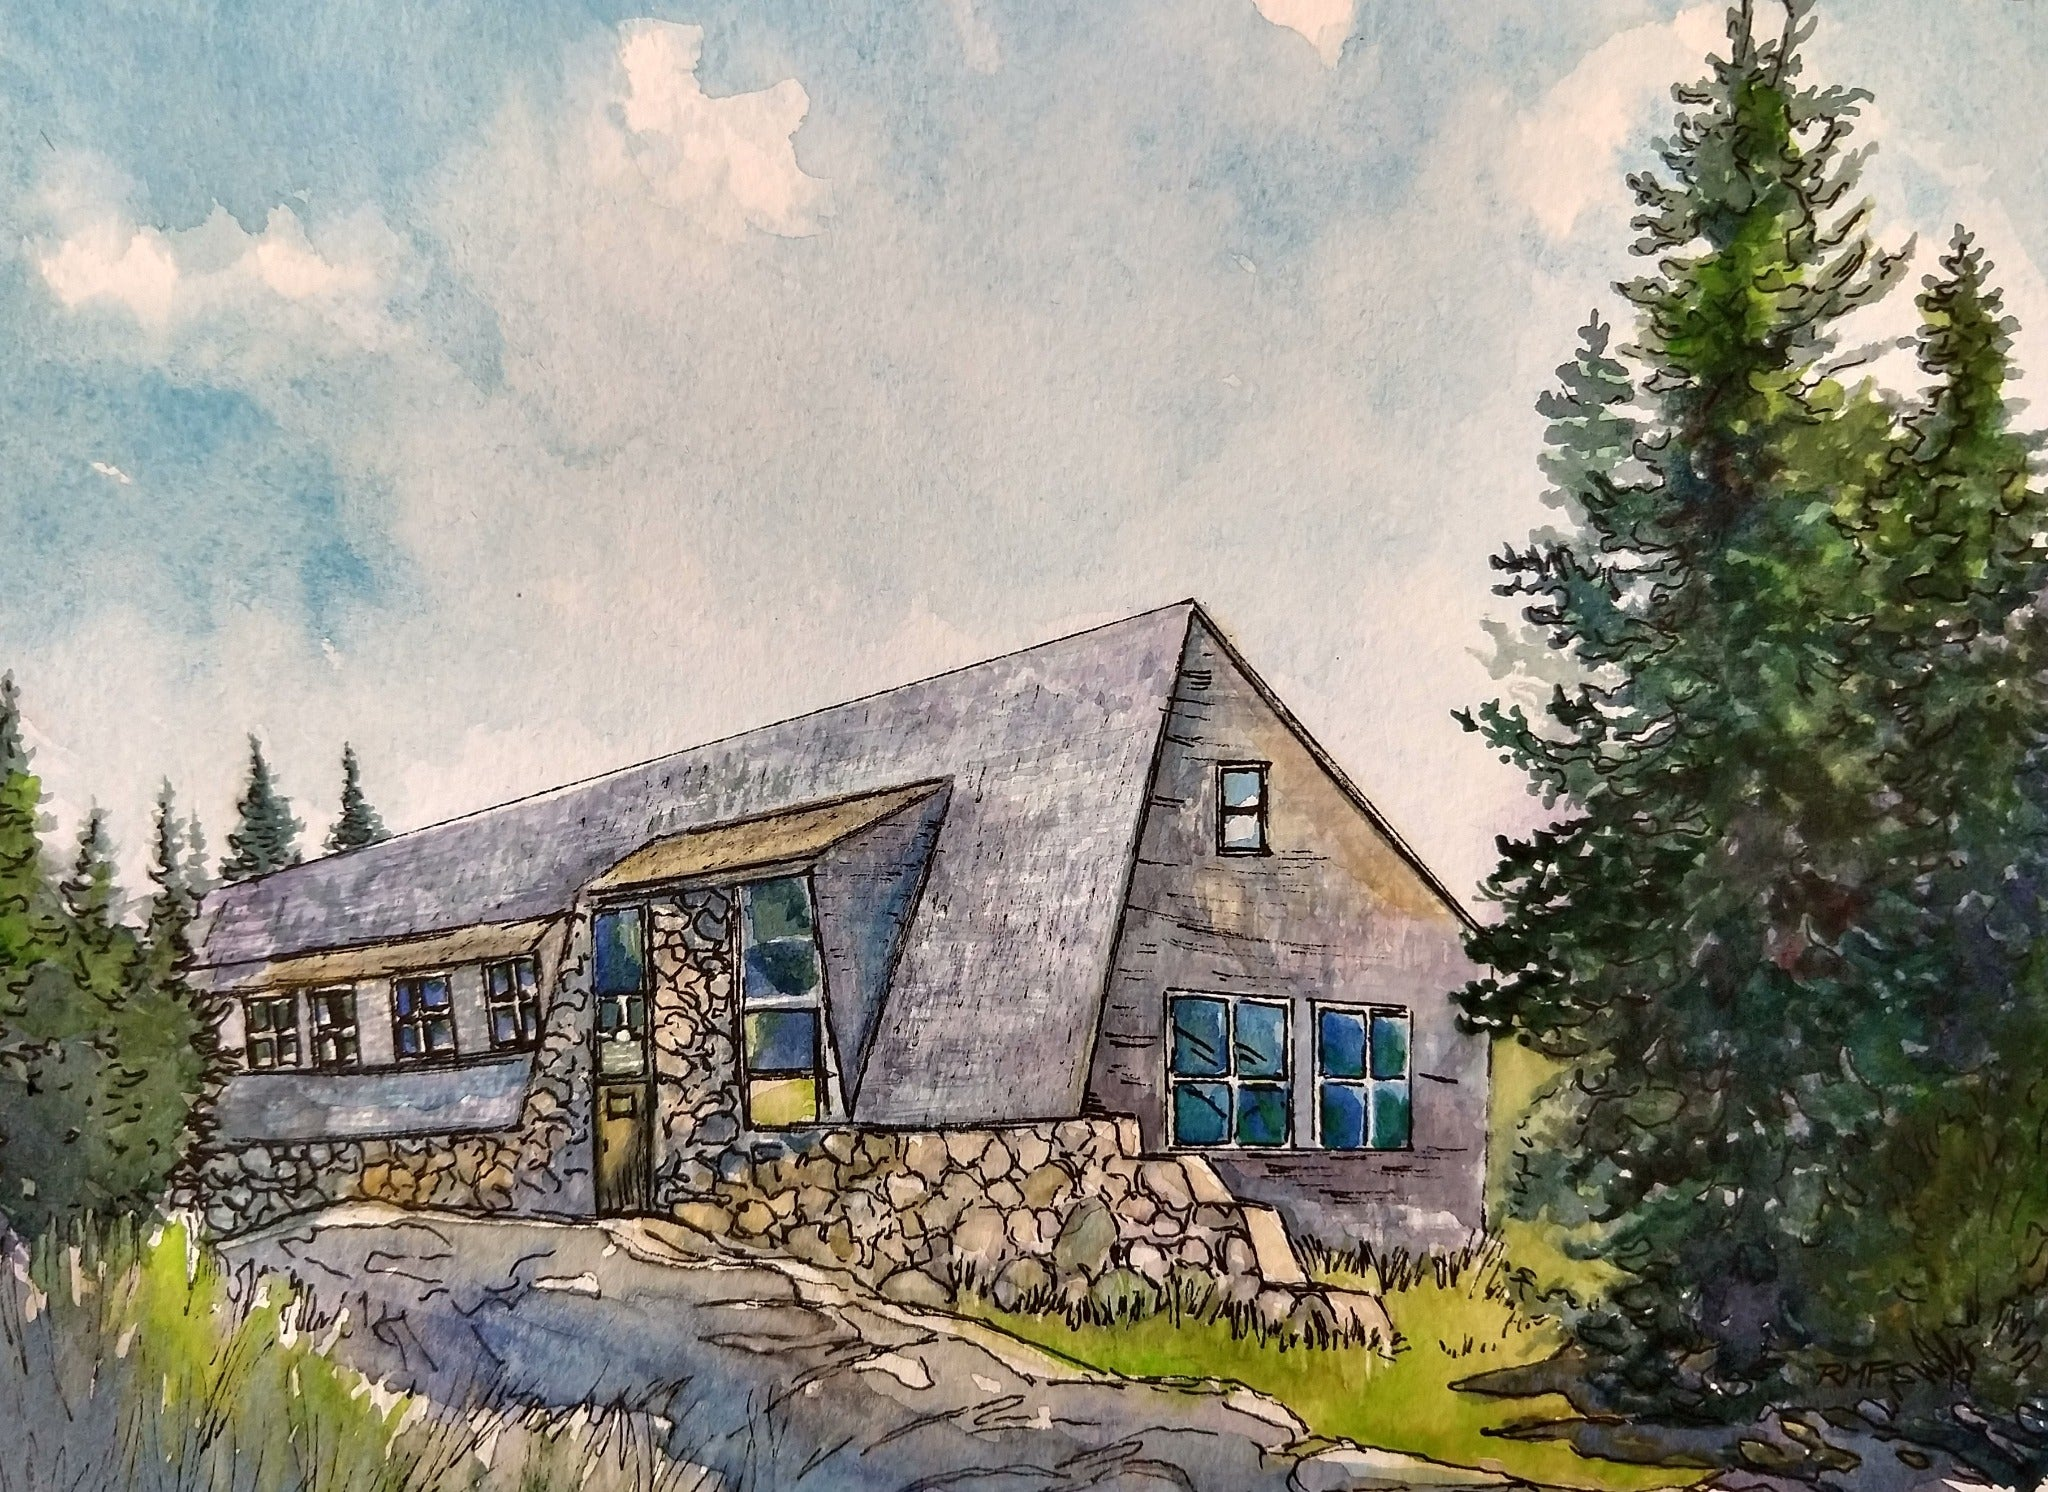 """Mizpah Spring Hut, White Mountains, NH,"" framed 9x6.6 inch watercolor and ink painting on paper (SOLD)"